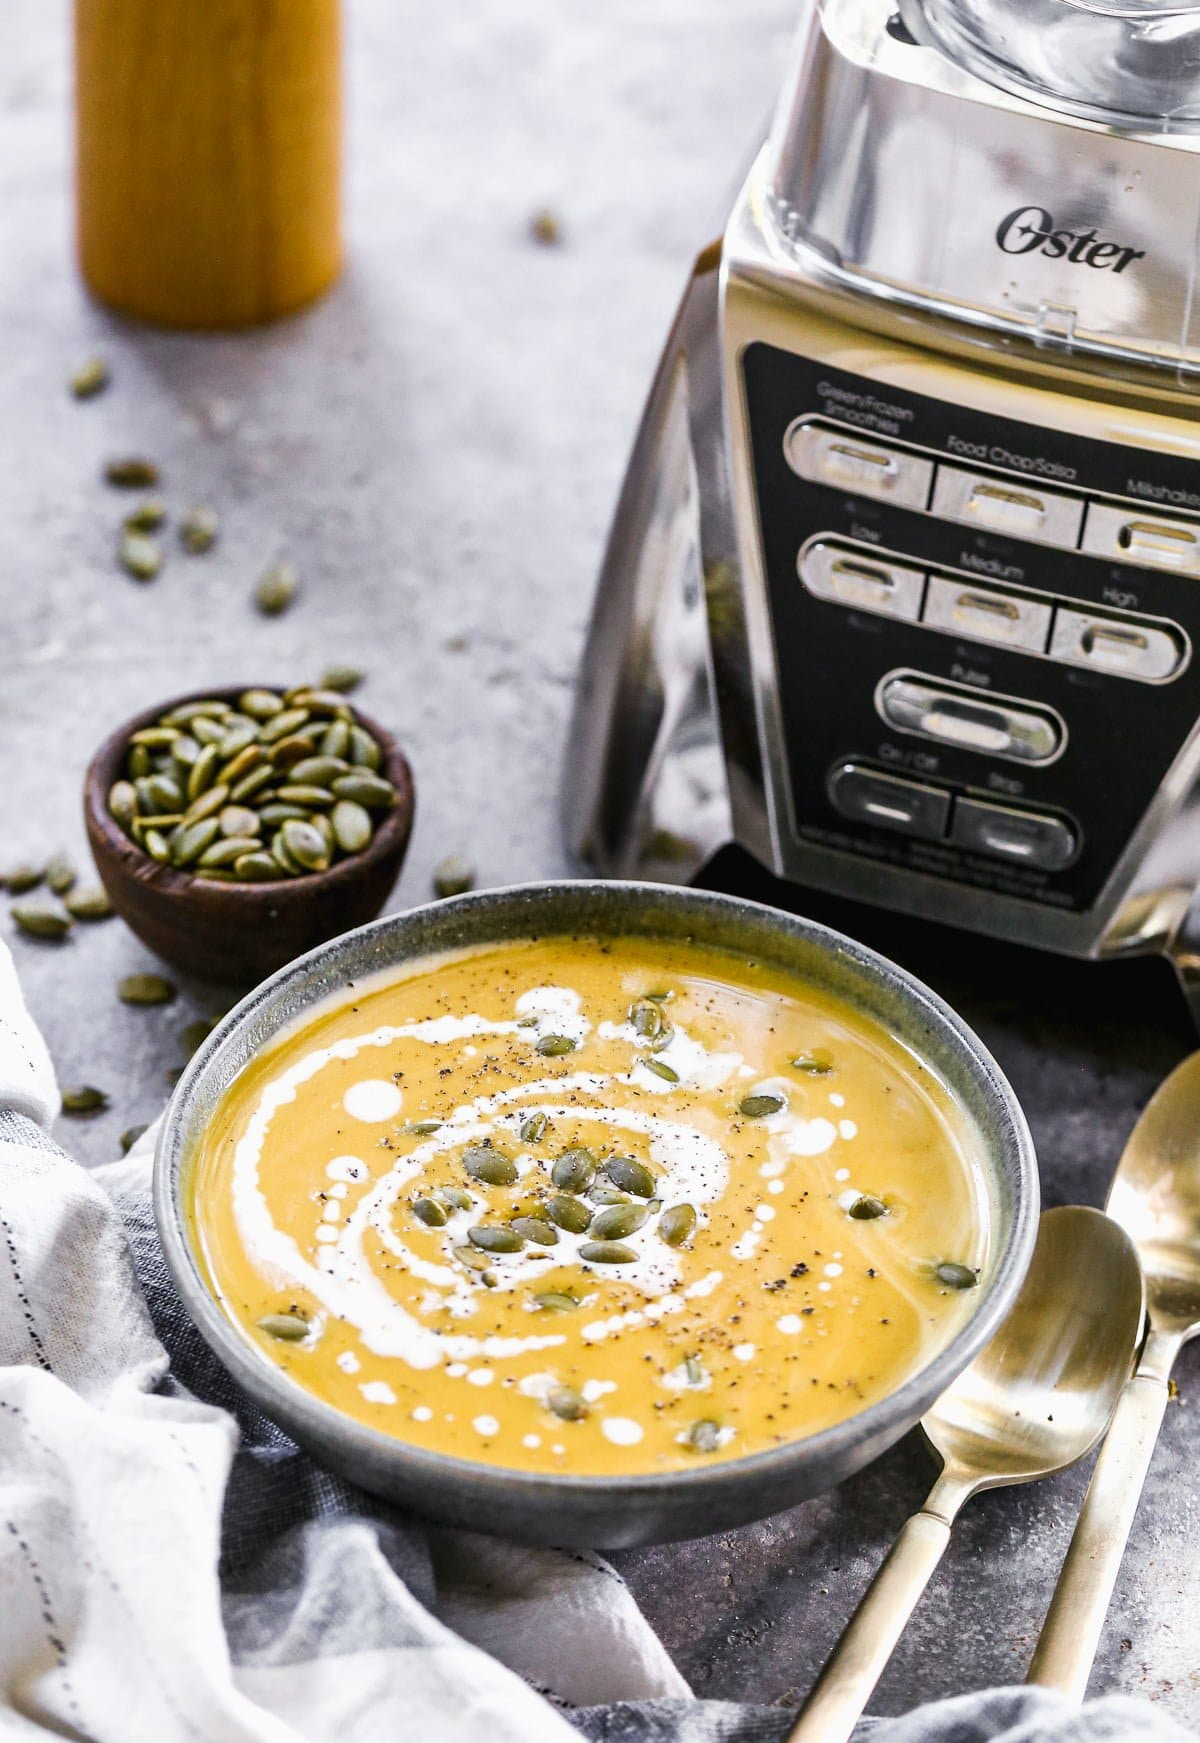 Real pumpkin, carrot, roasted garlic and hints of cardamom and ginger are the makings of our inagural ode to fall - Roasted Pumpkin Soup. This seasonal soup is creamy, luxurious and the only thing making the transition from hot sunny days to cooler temps bearable.